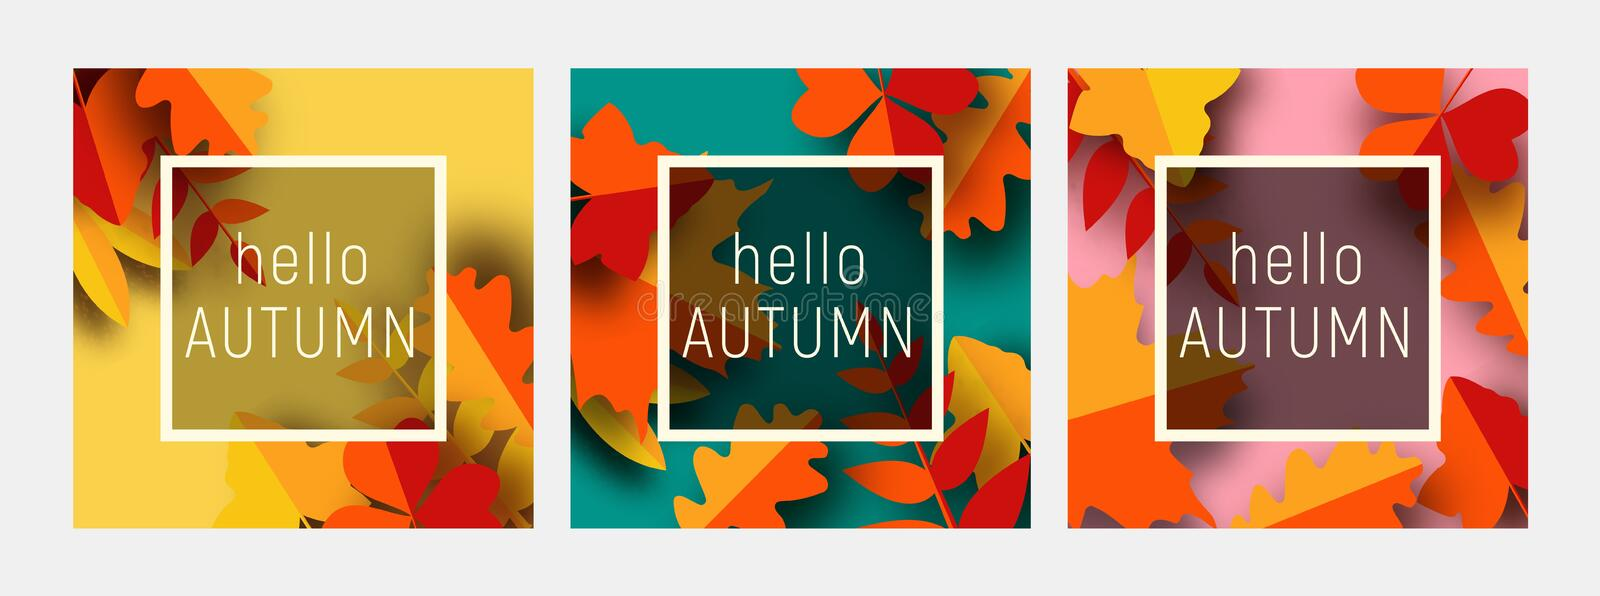 Hello autumn greeting card template set. Fall illustration with paper cut orange, red and yellow leaves. royalty free illustration